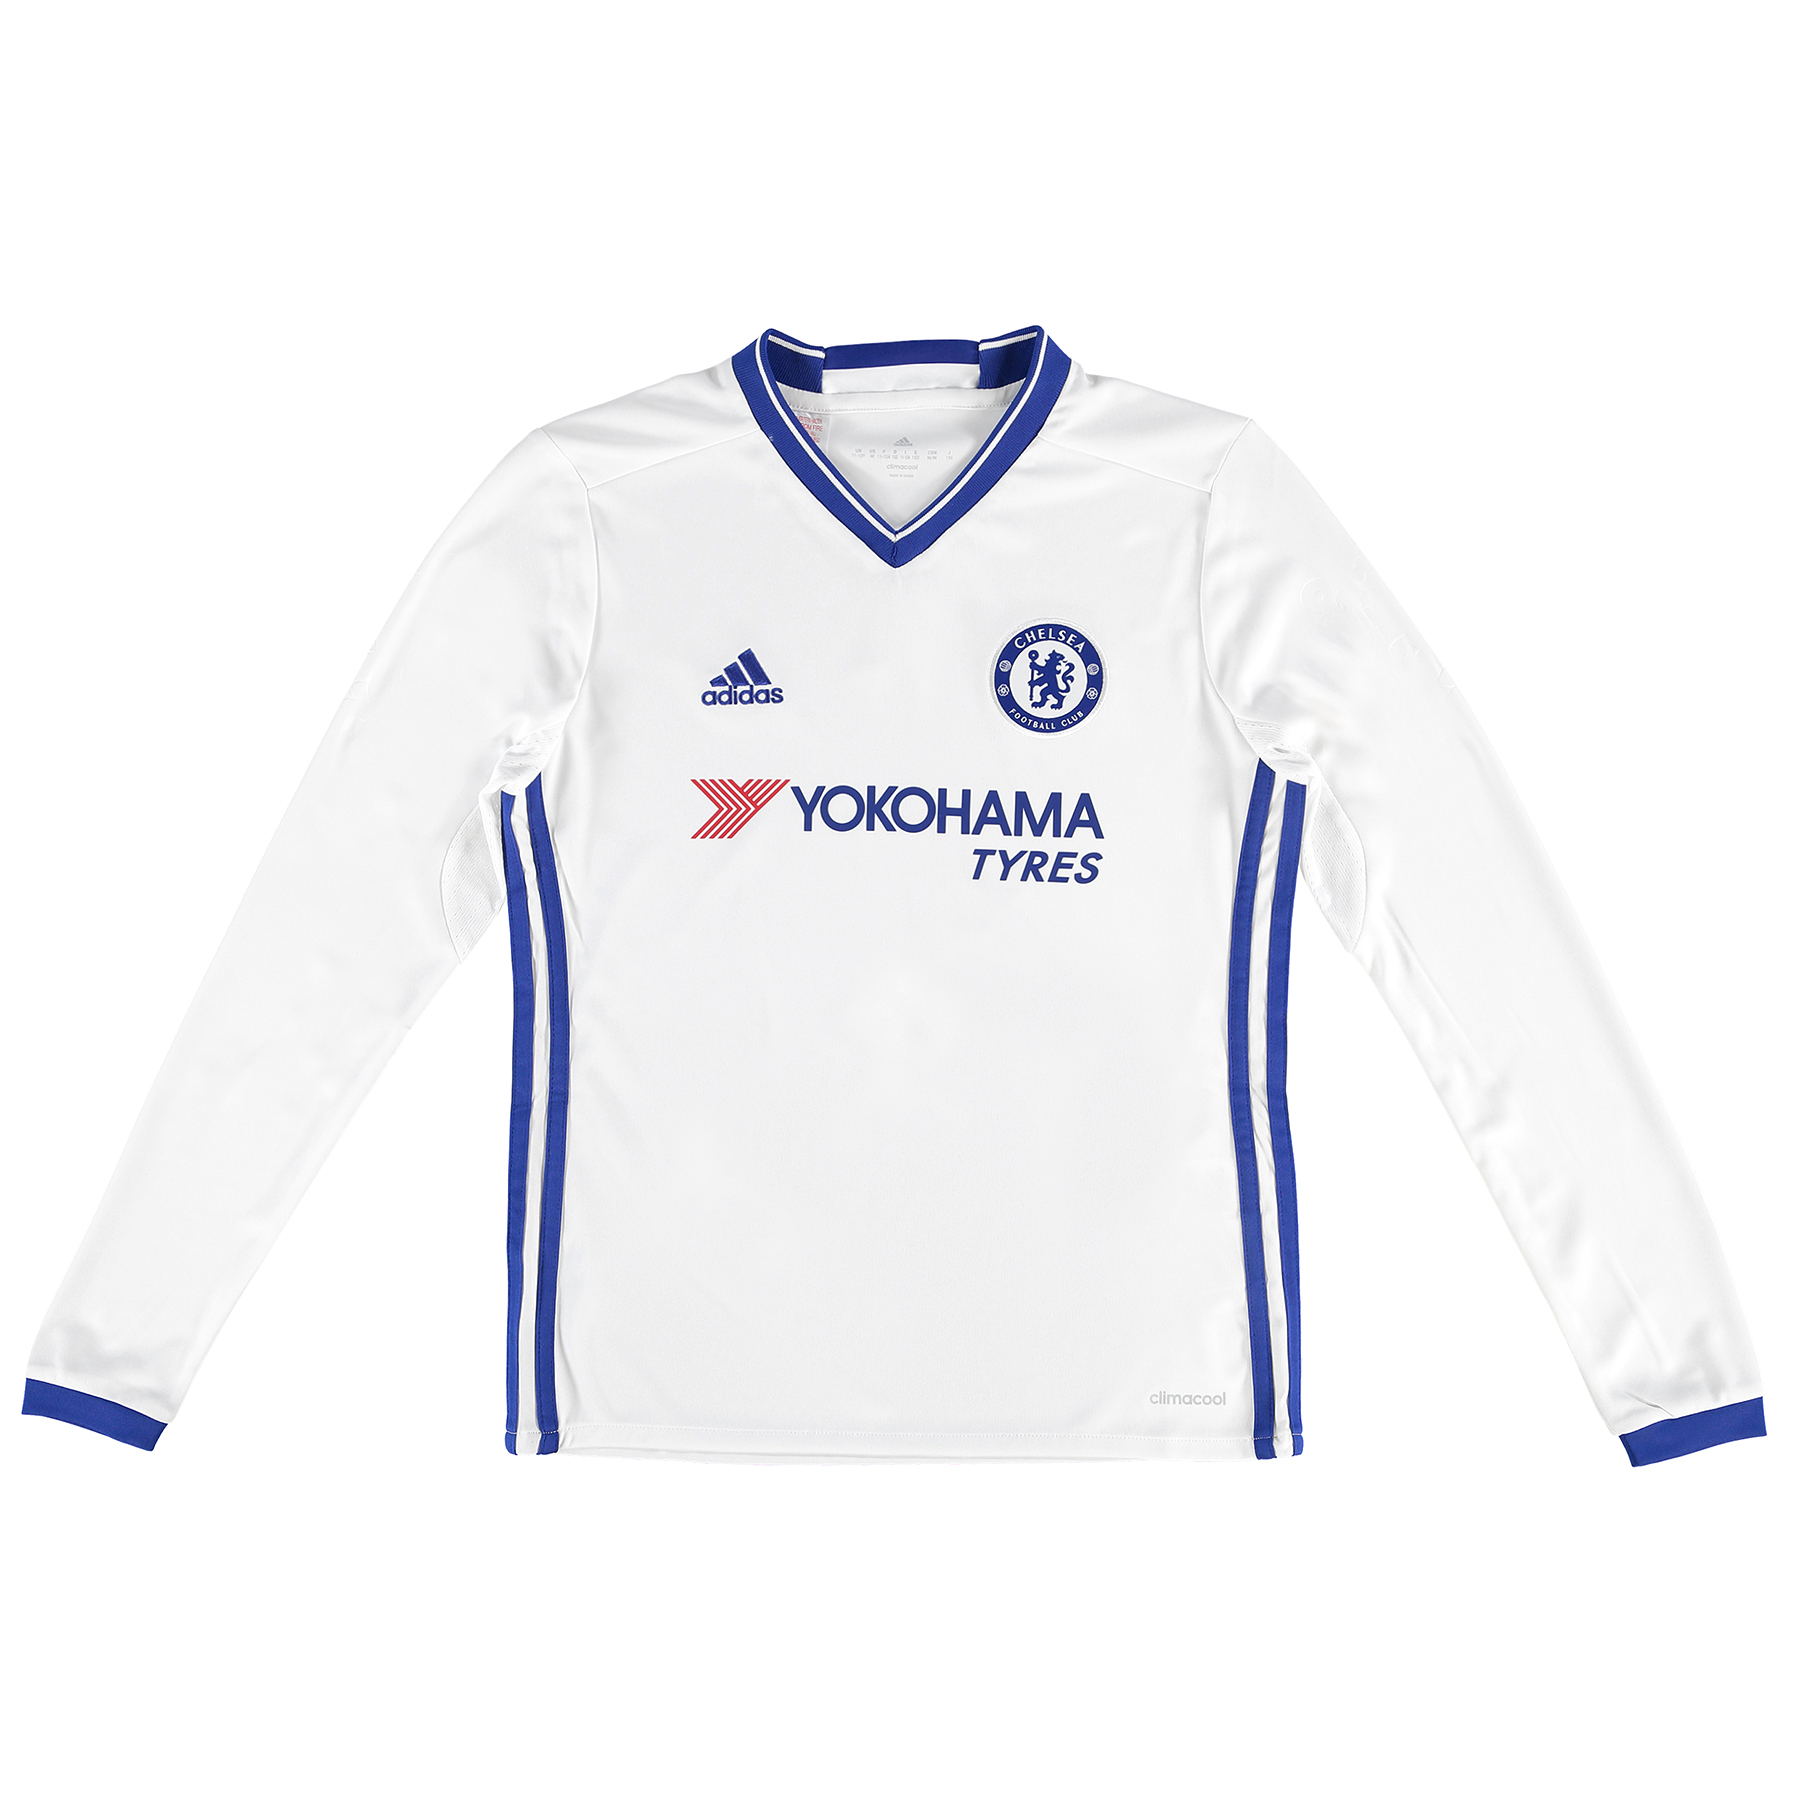 Chelsea Third Shirt 16-17 - Kids - Long Sleeve   The Chelsea Third Shirt 16-17 - Kids - Long Sleeve represents a classic colour reversal, with the Lions' usage of white as an alternate shirt option stemming back as far as 1905.   The blue collar and trim is particularly reminiscent of the Chelsea third shirt first introduced in 1958-59, as home-grown forward Jimmy Greaves netted 32 times in 42 starts to become the English top flight's leading goalscorer.    Greaves would surpass the feat two years later, racking up a ratio of more than a goal per game and setting the all-time benchmark for Chelsea strikers to aspire to, as the club's white and blue design endured as an away kit.   Now, these colours return to the Chelsea locker, as Antonio Conte's team attempt to reclaim their Premier League crown in matches across the country.   Details:   Long sleeve Embossed fabric Club crest: woven badge Embroidered lion on sleeve Engineered Chelsea FC sign-off on collar 100% recycled polyester